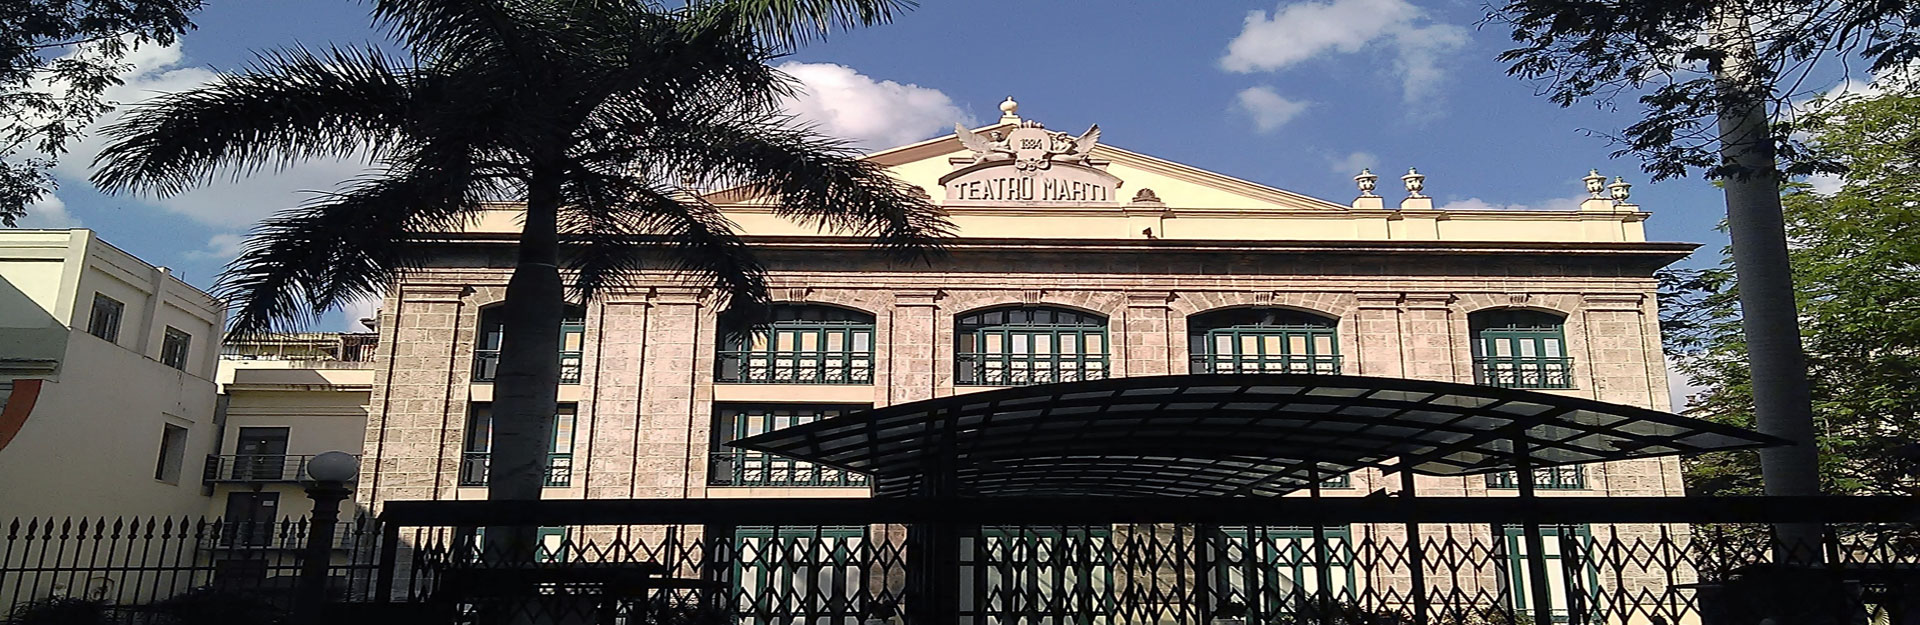 Martí Theater,  Cuba Travel